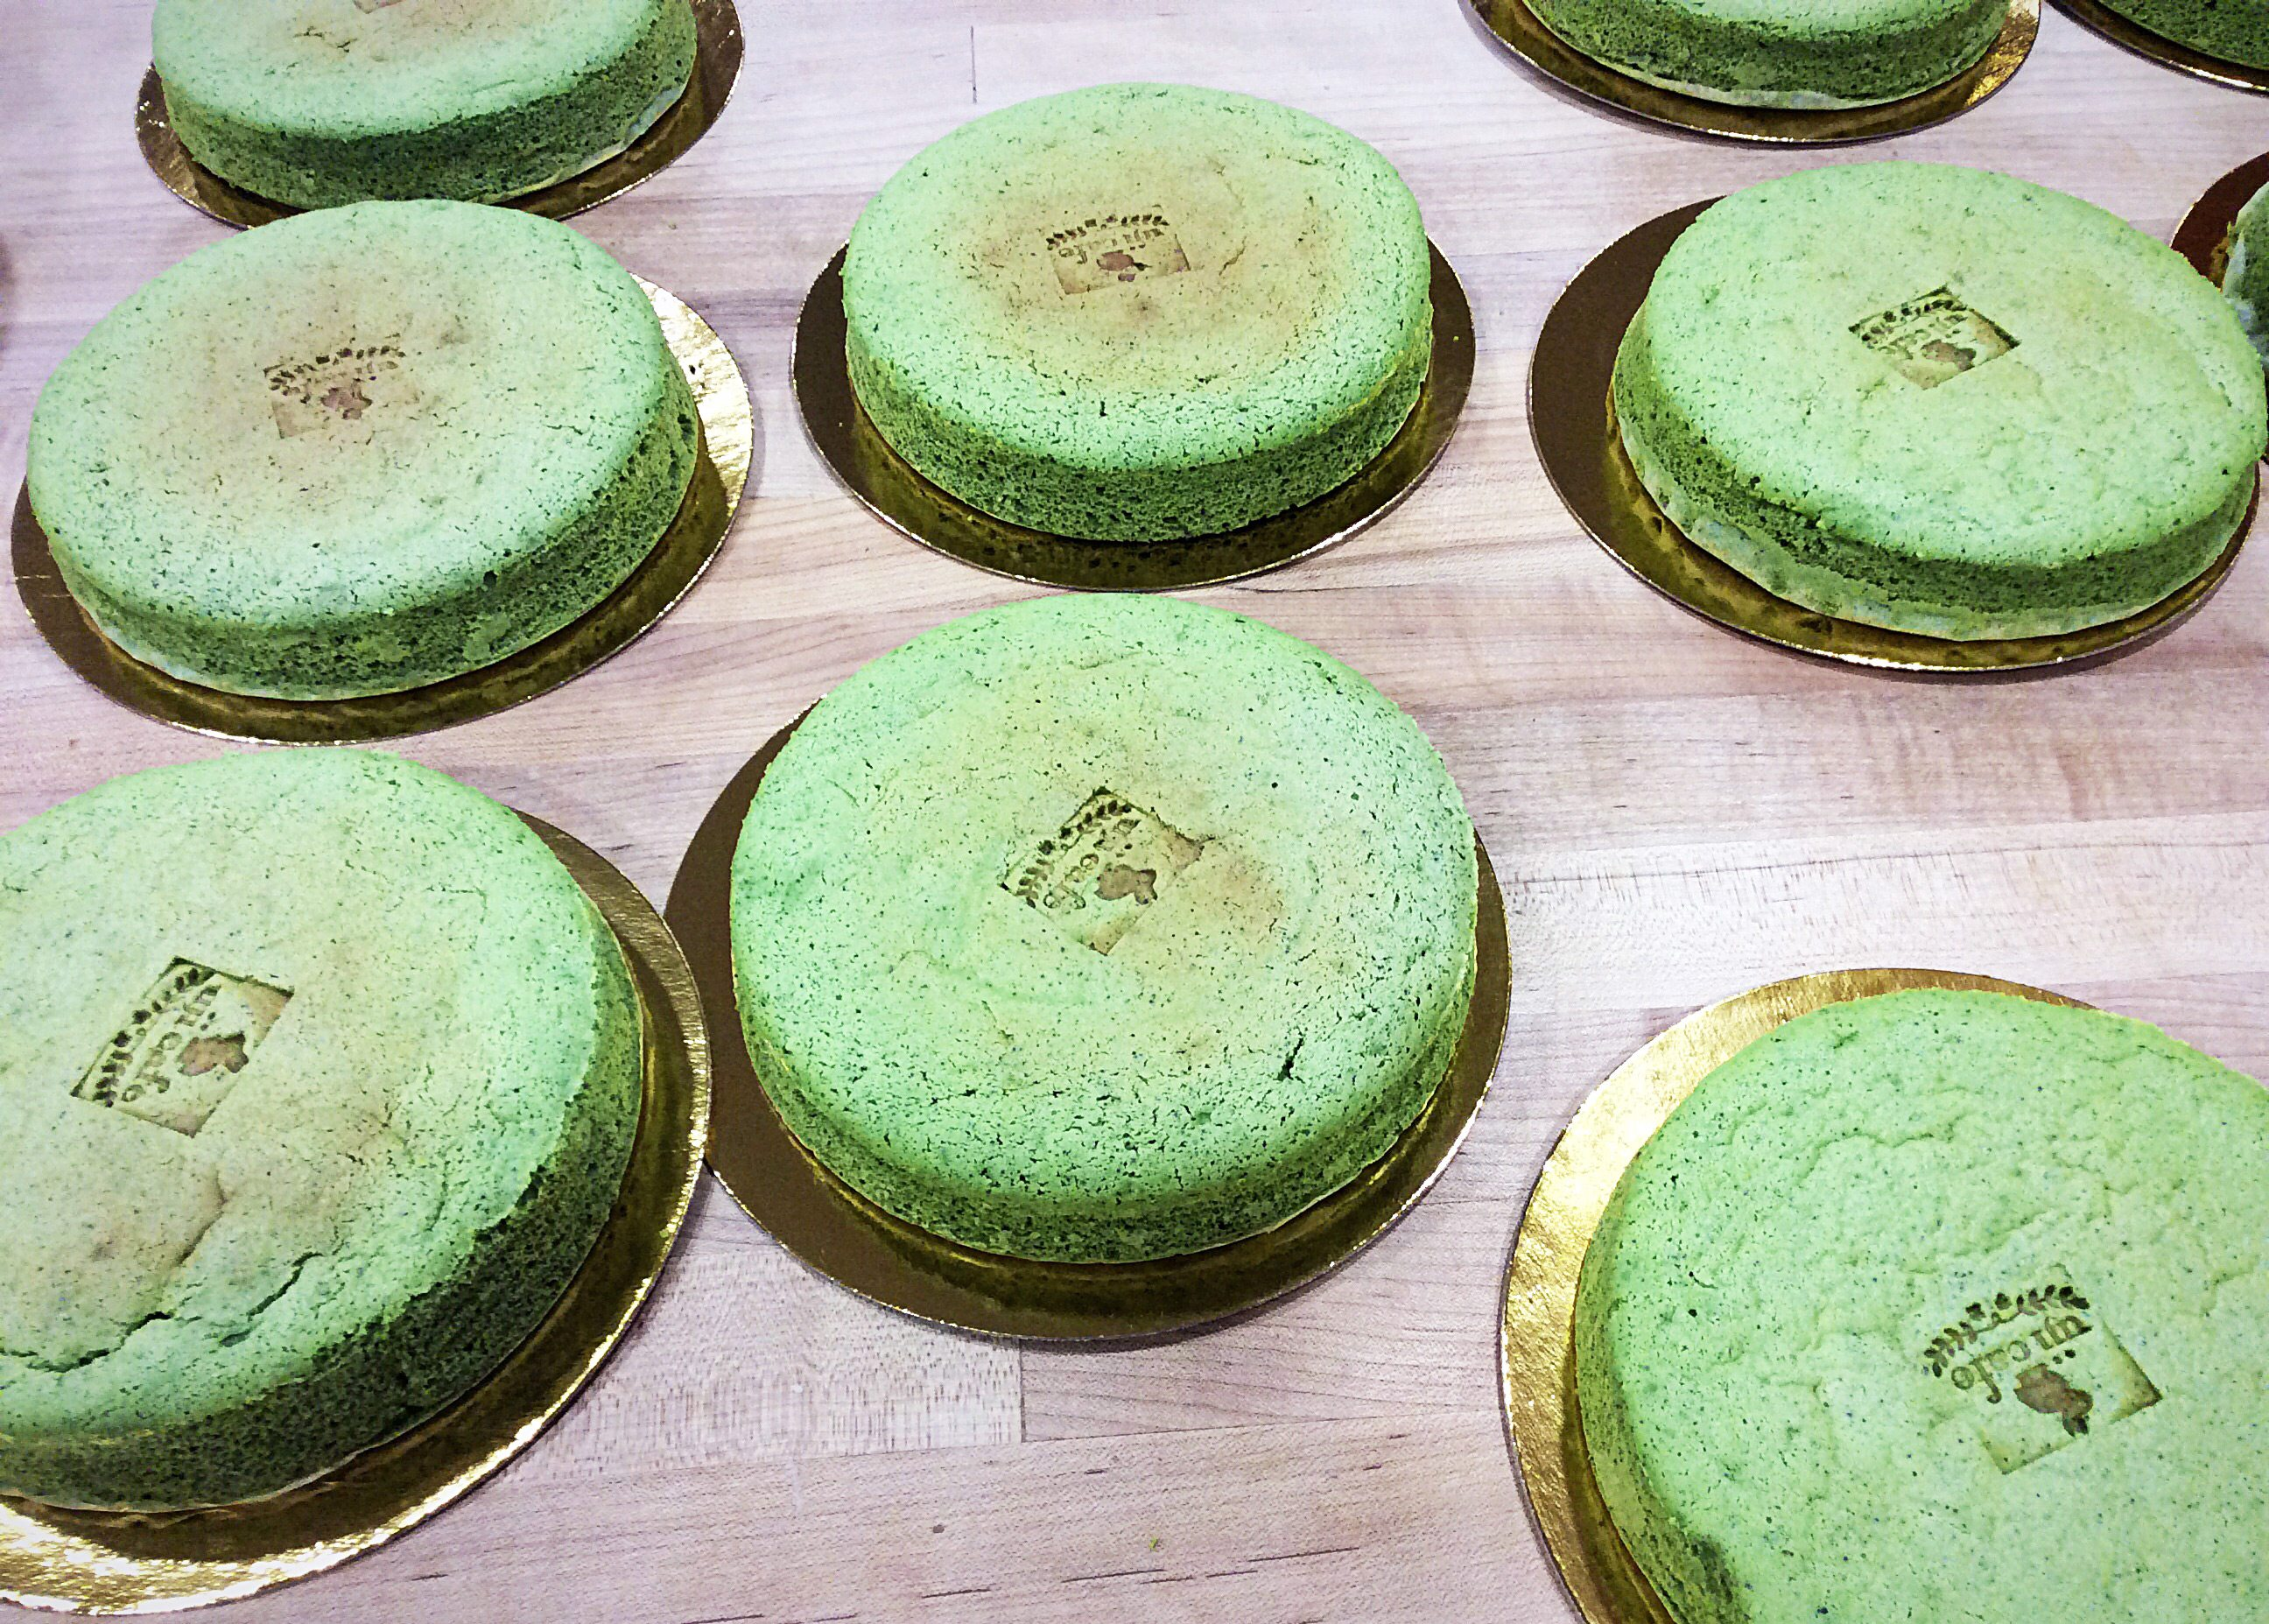 Matcha cheesecakes cool at the back of the cafe. A tiny hot brand is used to put the Uji Café logo on each one